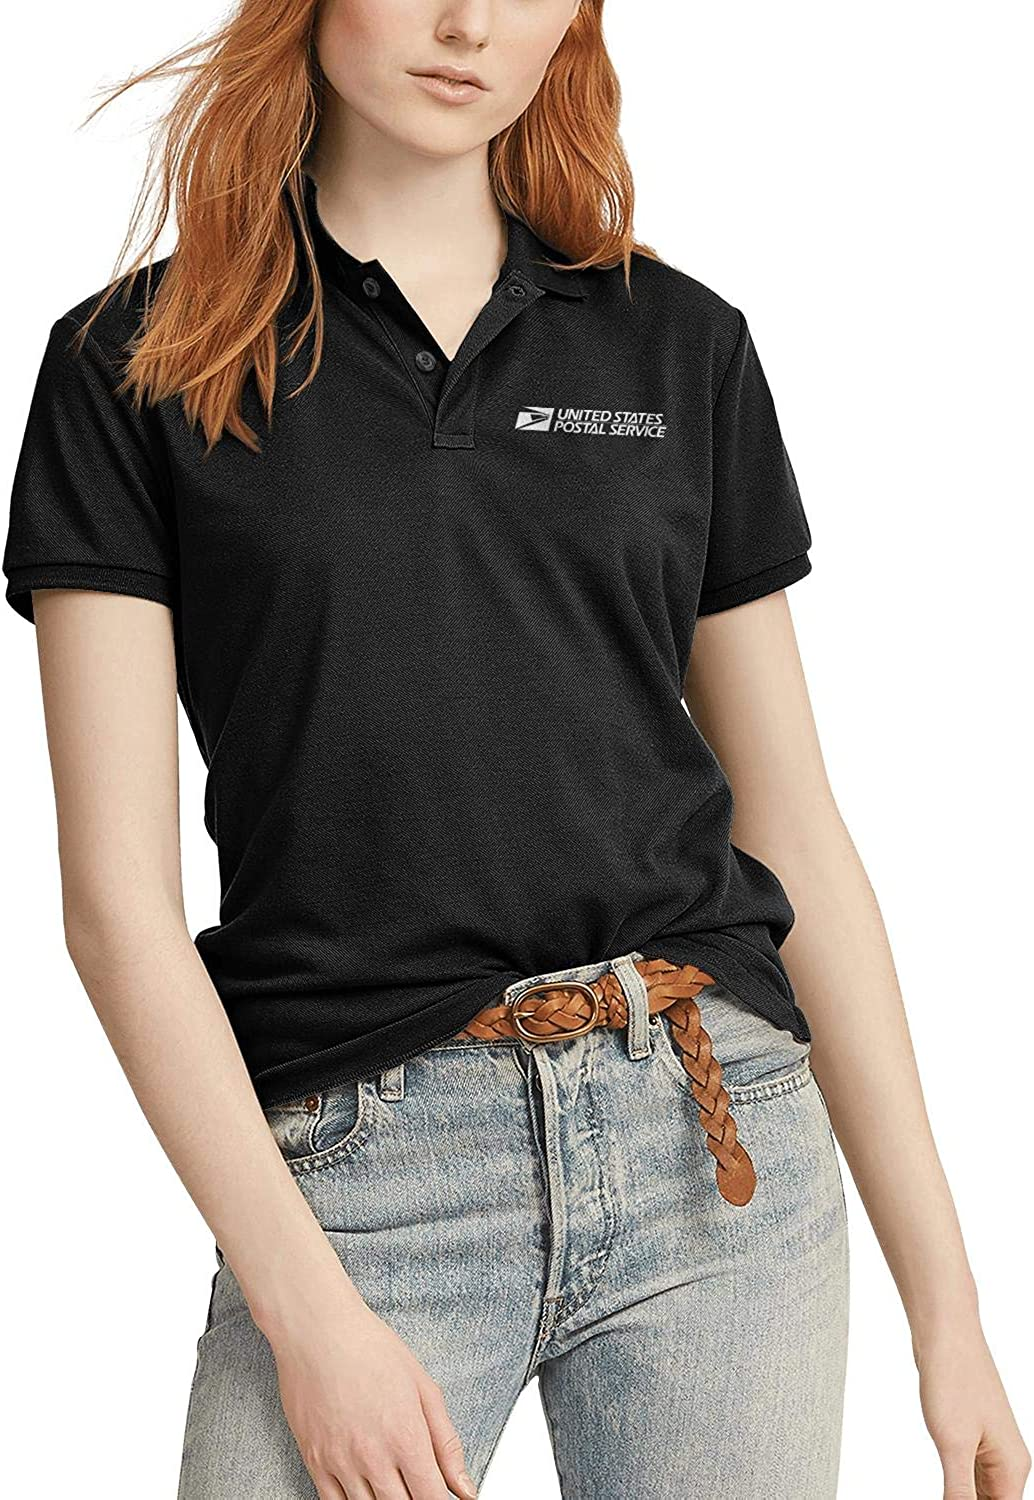 Womens White-United-States-Postal-Service-USPS-Logo- Original Black Polo T Shirt Tee Jersey